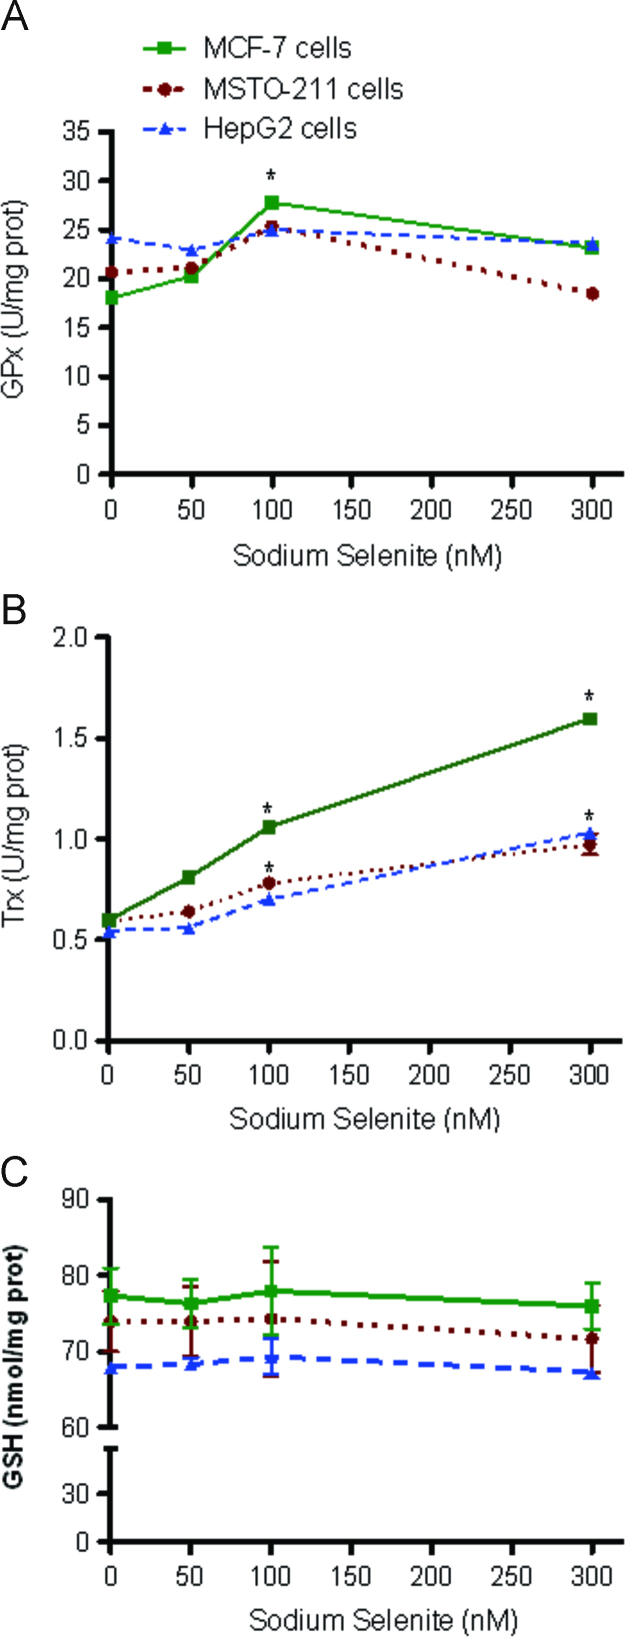 Effect of increasing levels of sodium selenite (0–300 nM) on glutathione peroxidase activity (A), thioredoxin reductase (TRx) activity (B) and GSH (C) levels in MSTO-211 (●), HepG2 (▲) or MCF-7 (■) cells. Data are mean±SD of at least three independent experiments.* P